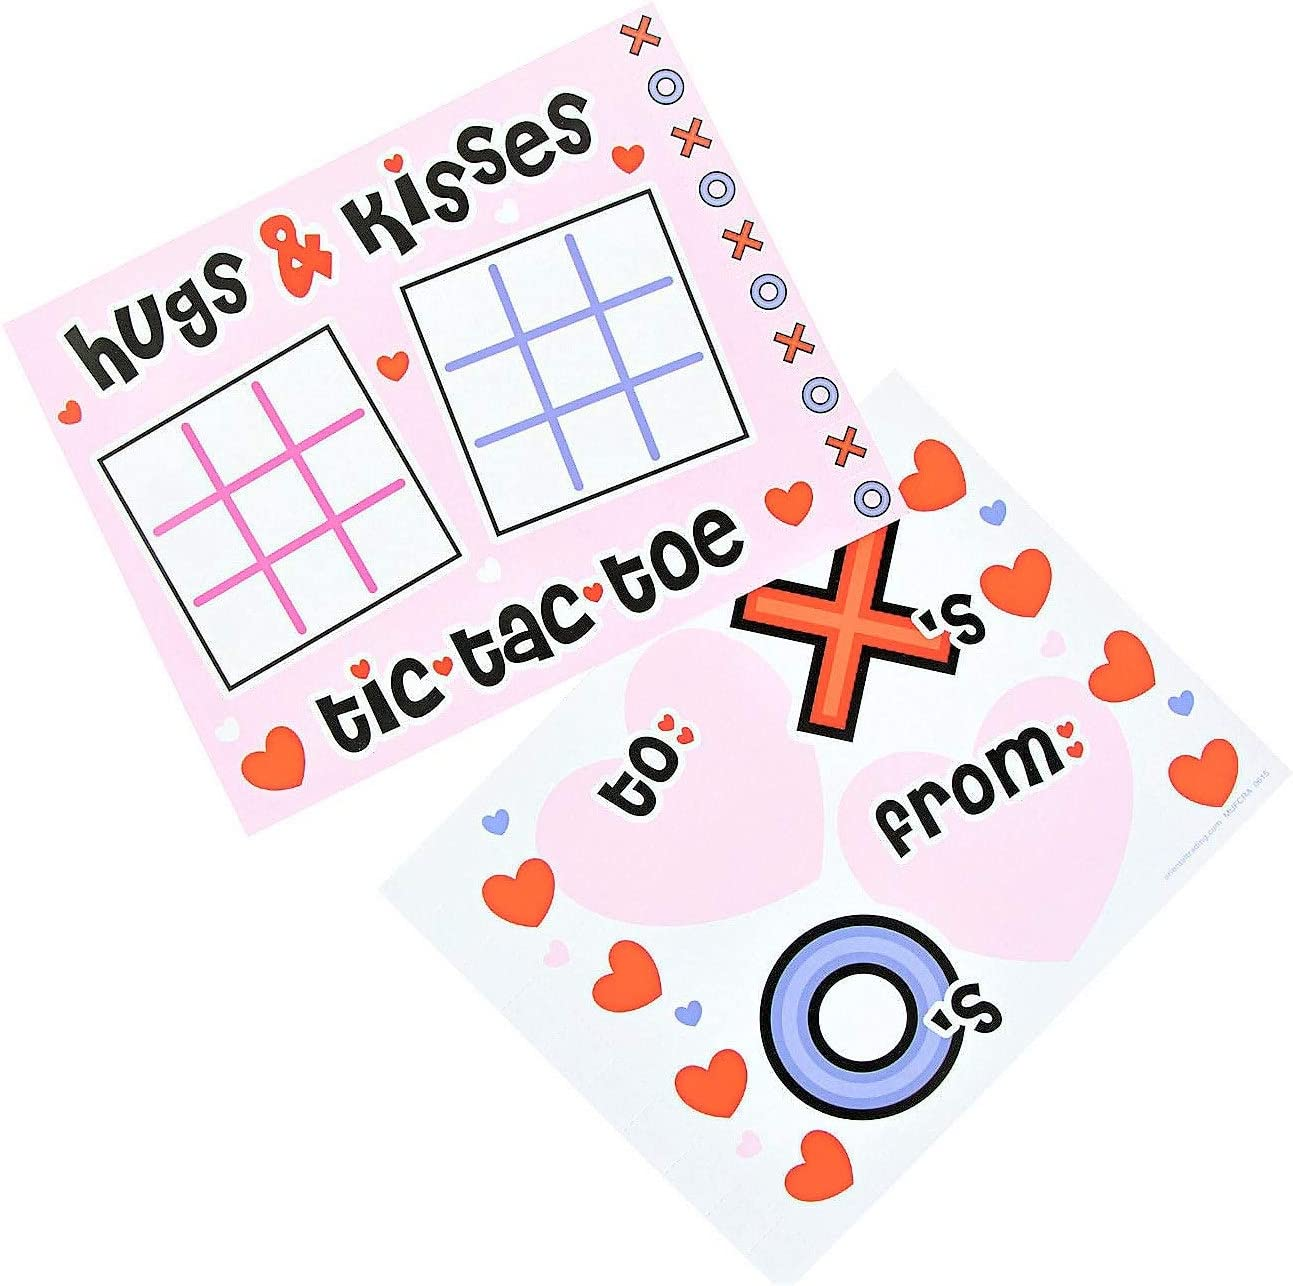 School Prize Box 2020 Toys Candy Alternatives Playing Cards Activities for Classroom Gift Exchange 36 Games Valentines Day Paper Games Bulk Assortment Fortune Teller MASH /& More!